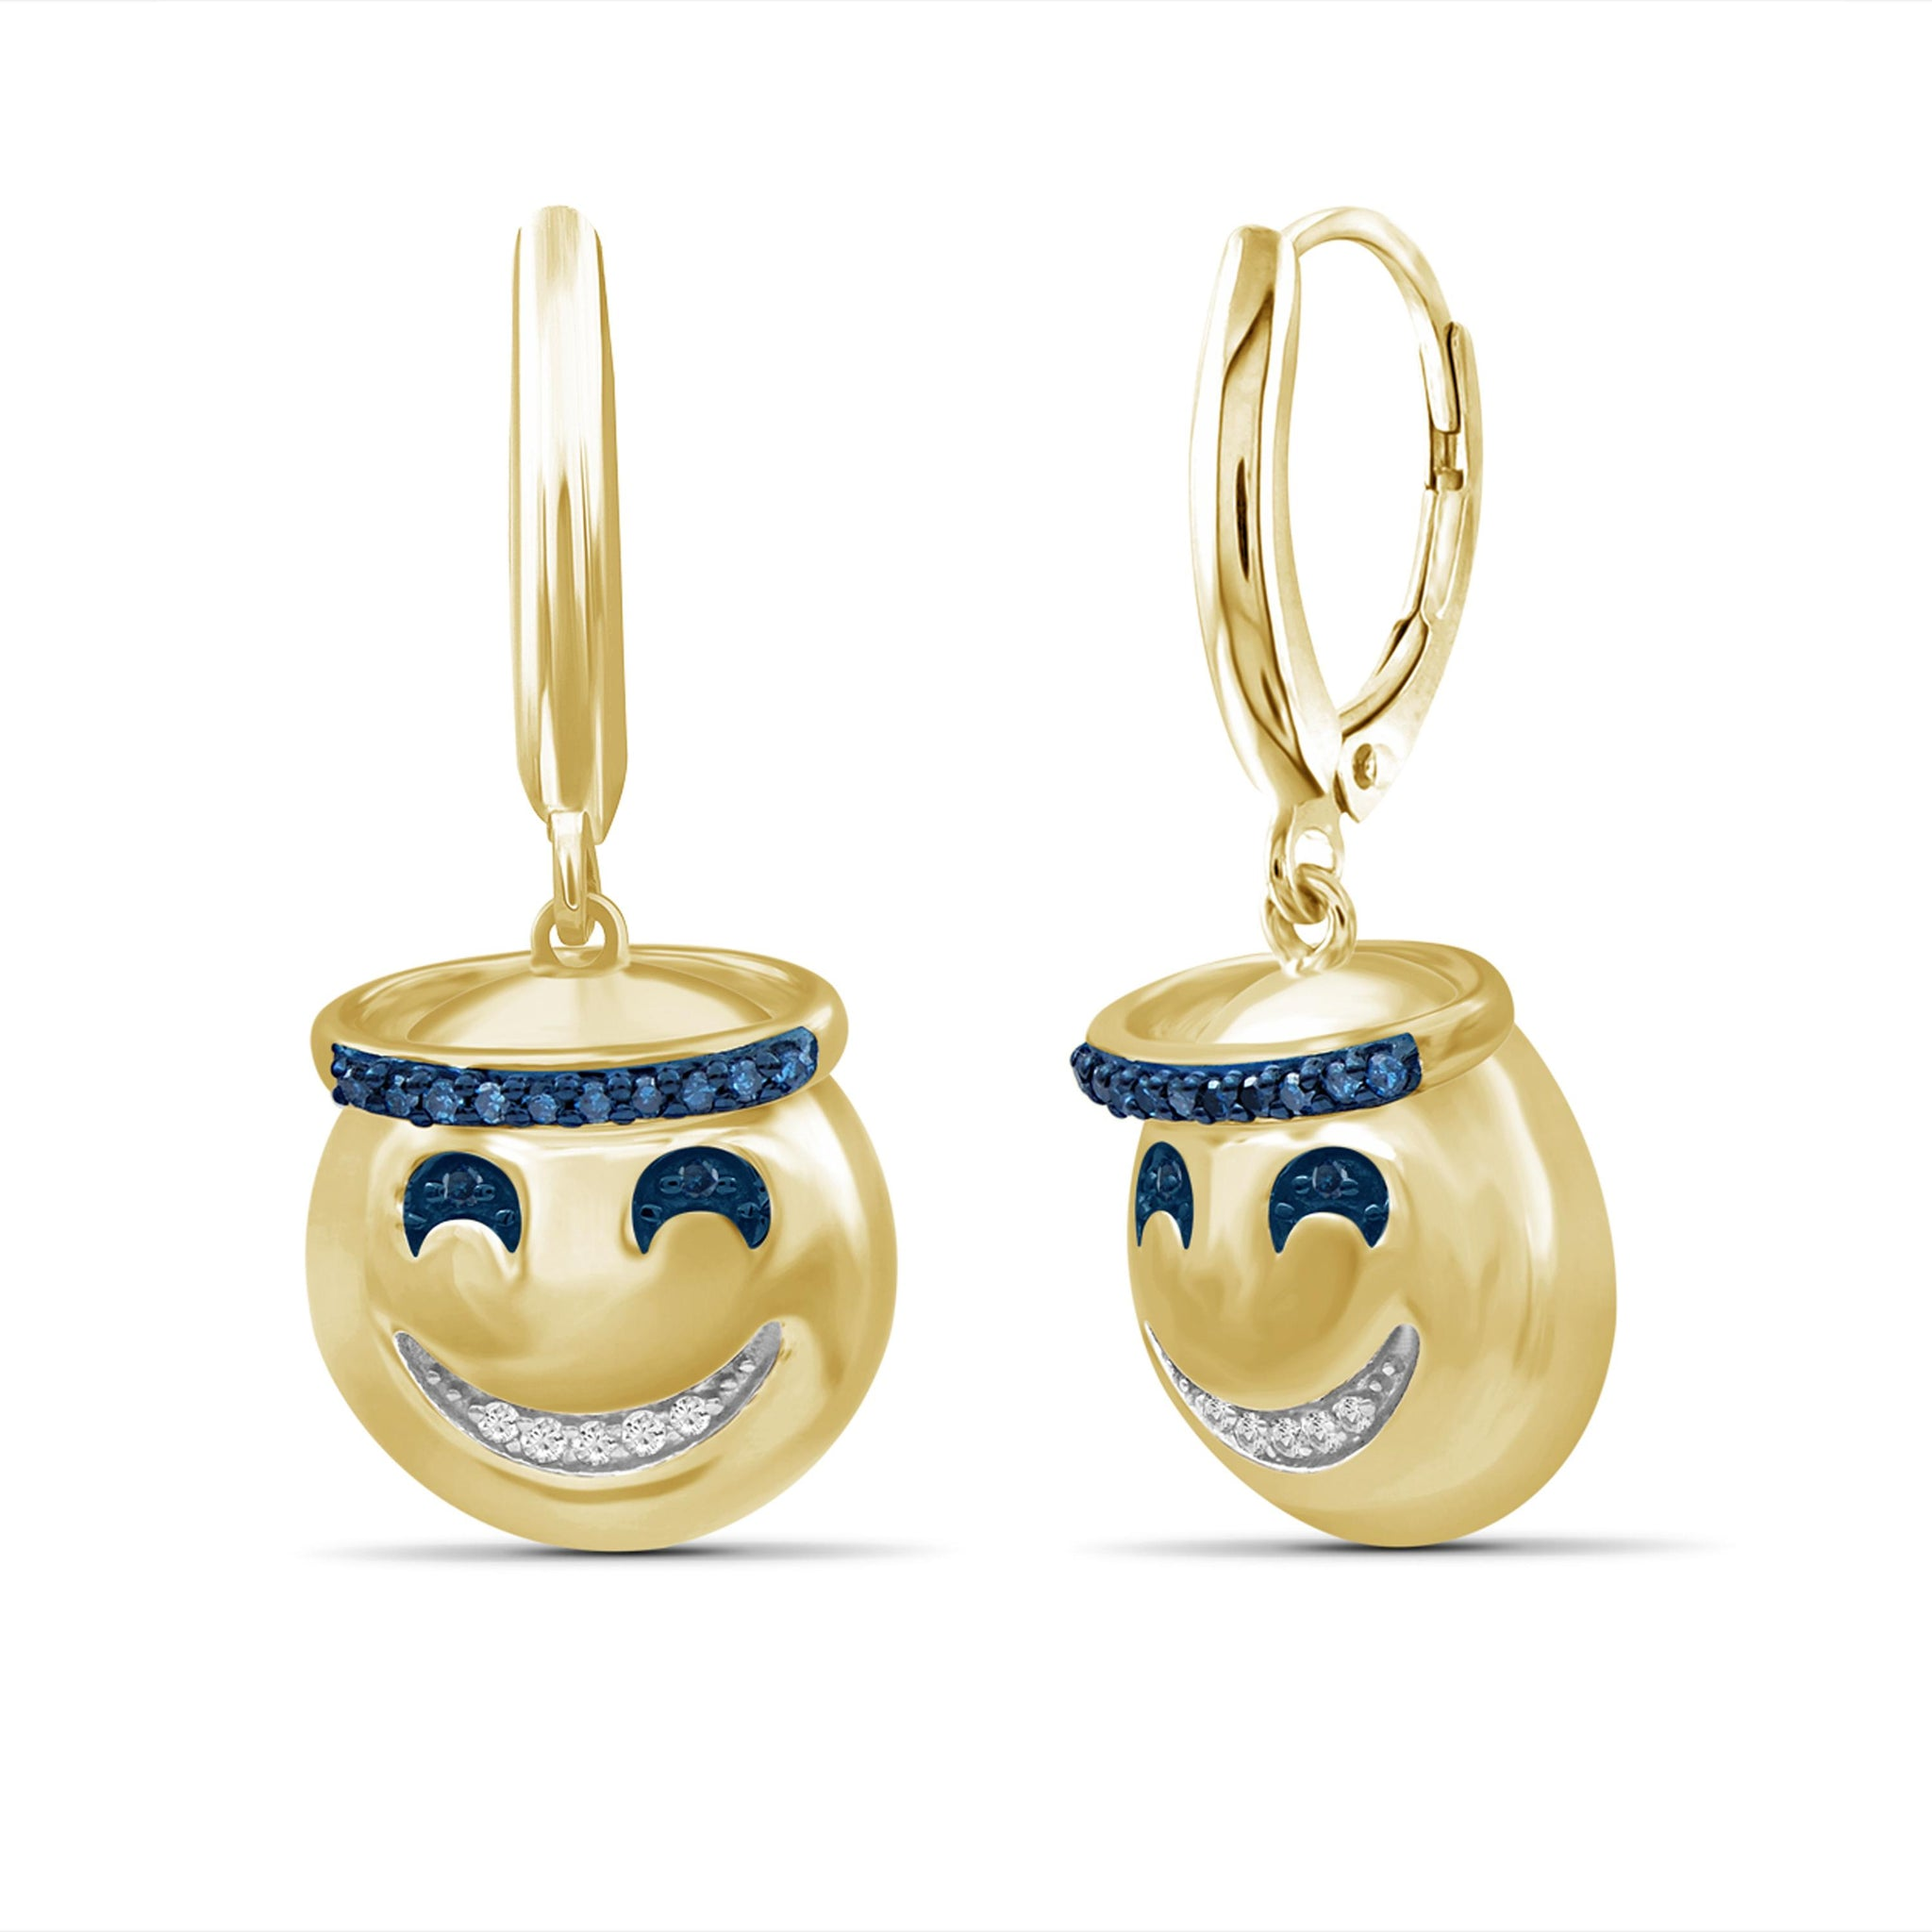 JewelonFire 1/10 Ctw Blue And White Diamond 14k Gold Over Silver Emoji Earrings